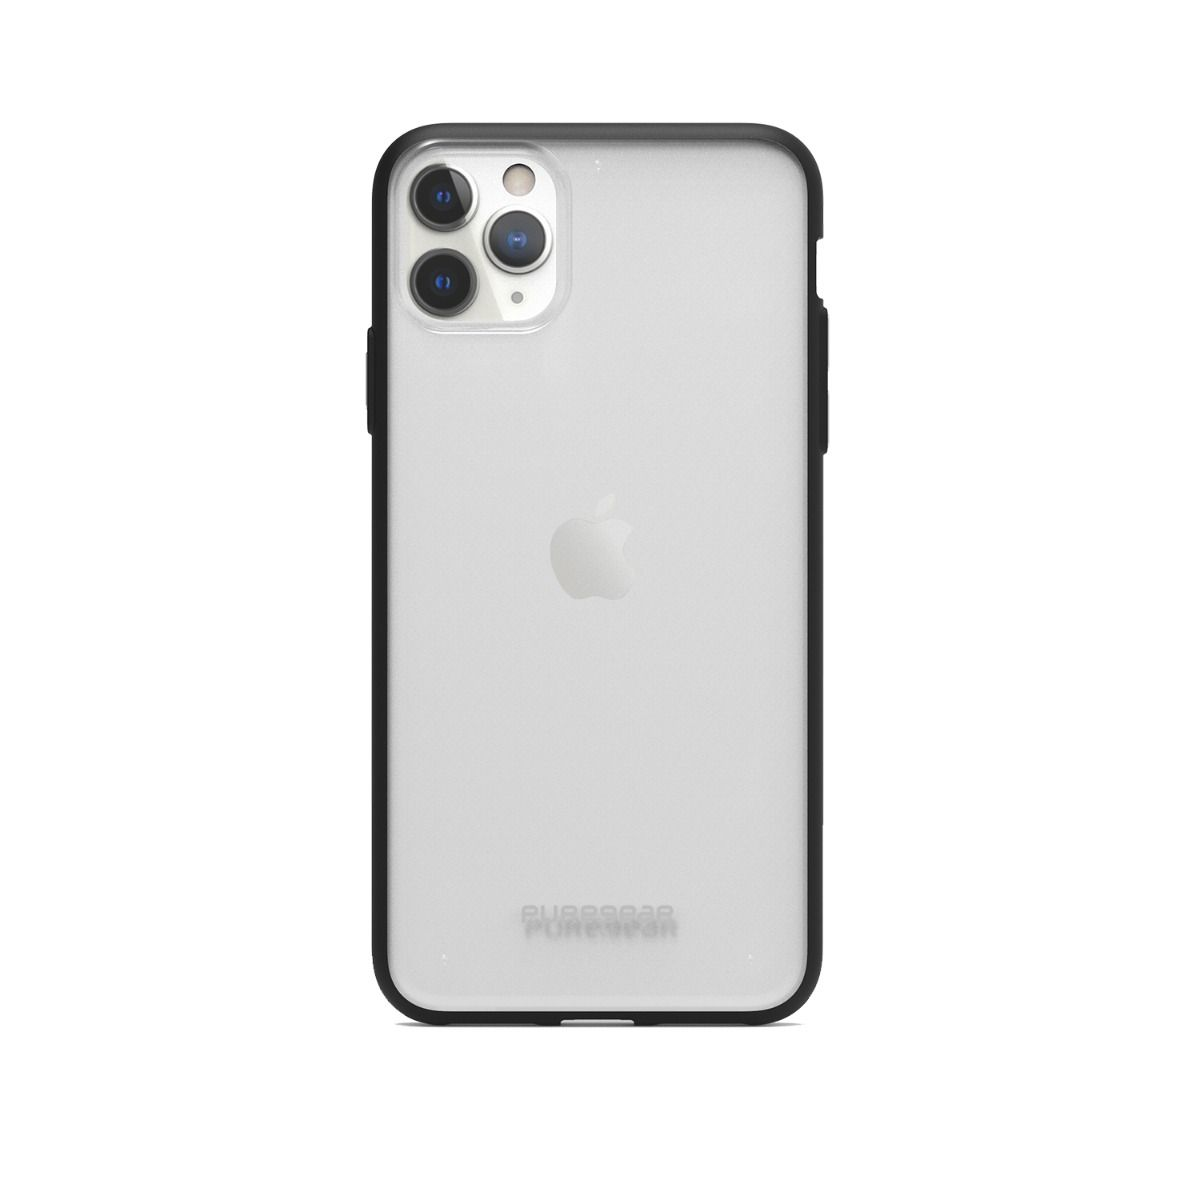 Apple iPhone 11 Pro Max Slim Shell Case - Clear/Black